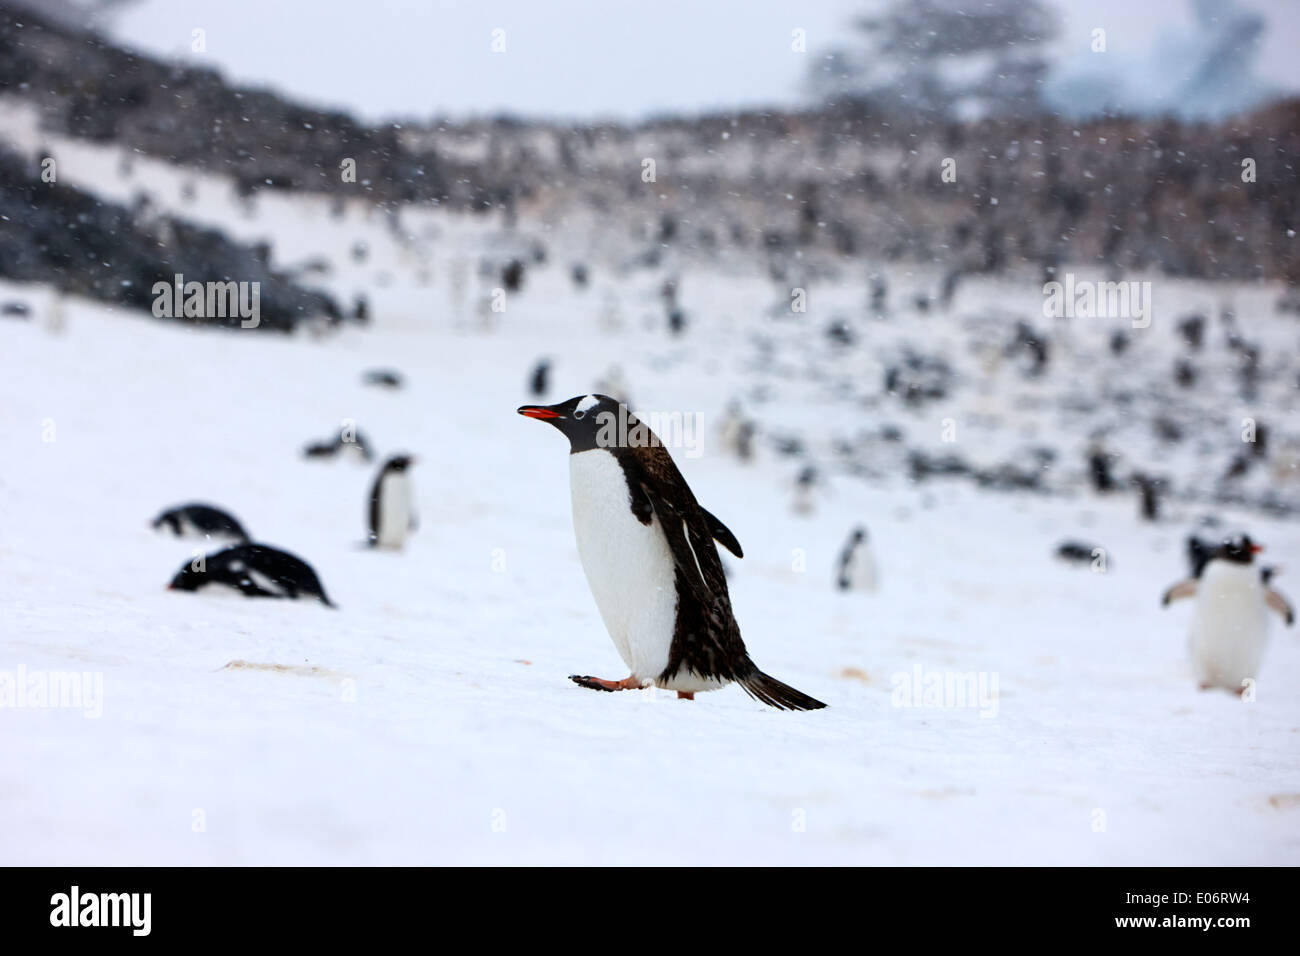 penguin walking uphill in snow storm in gentoo penguin colony on cuverville island antarctica - Stock Image